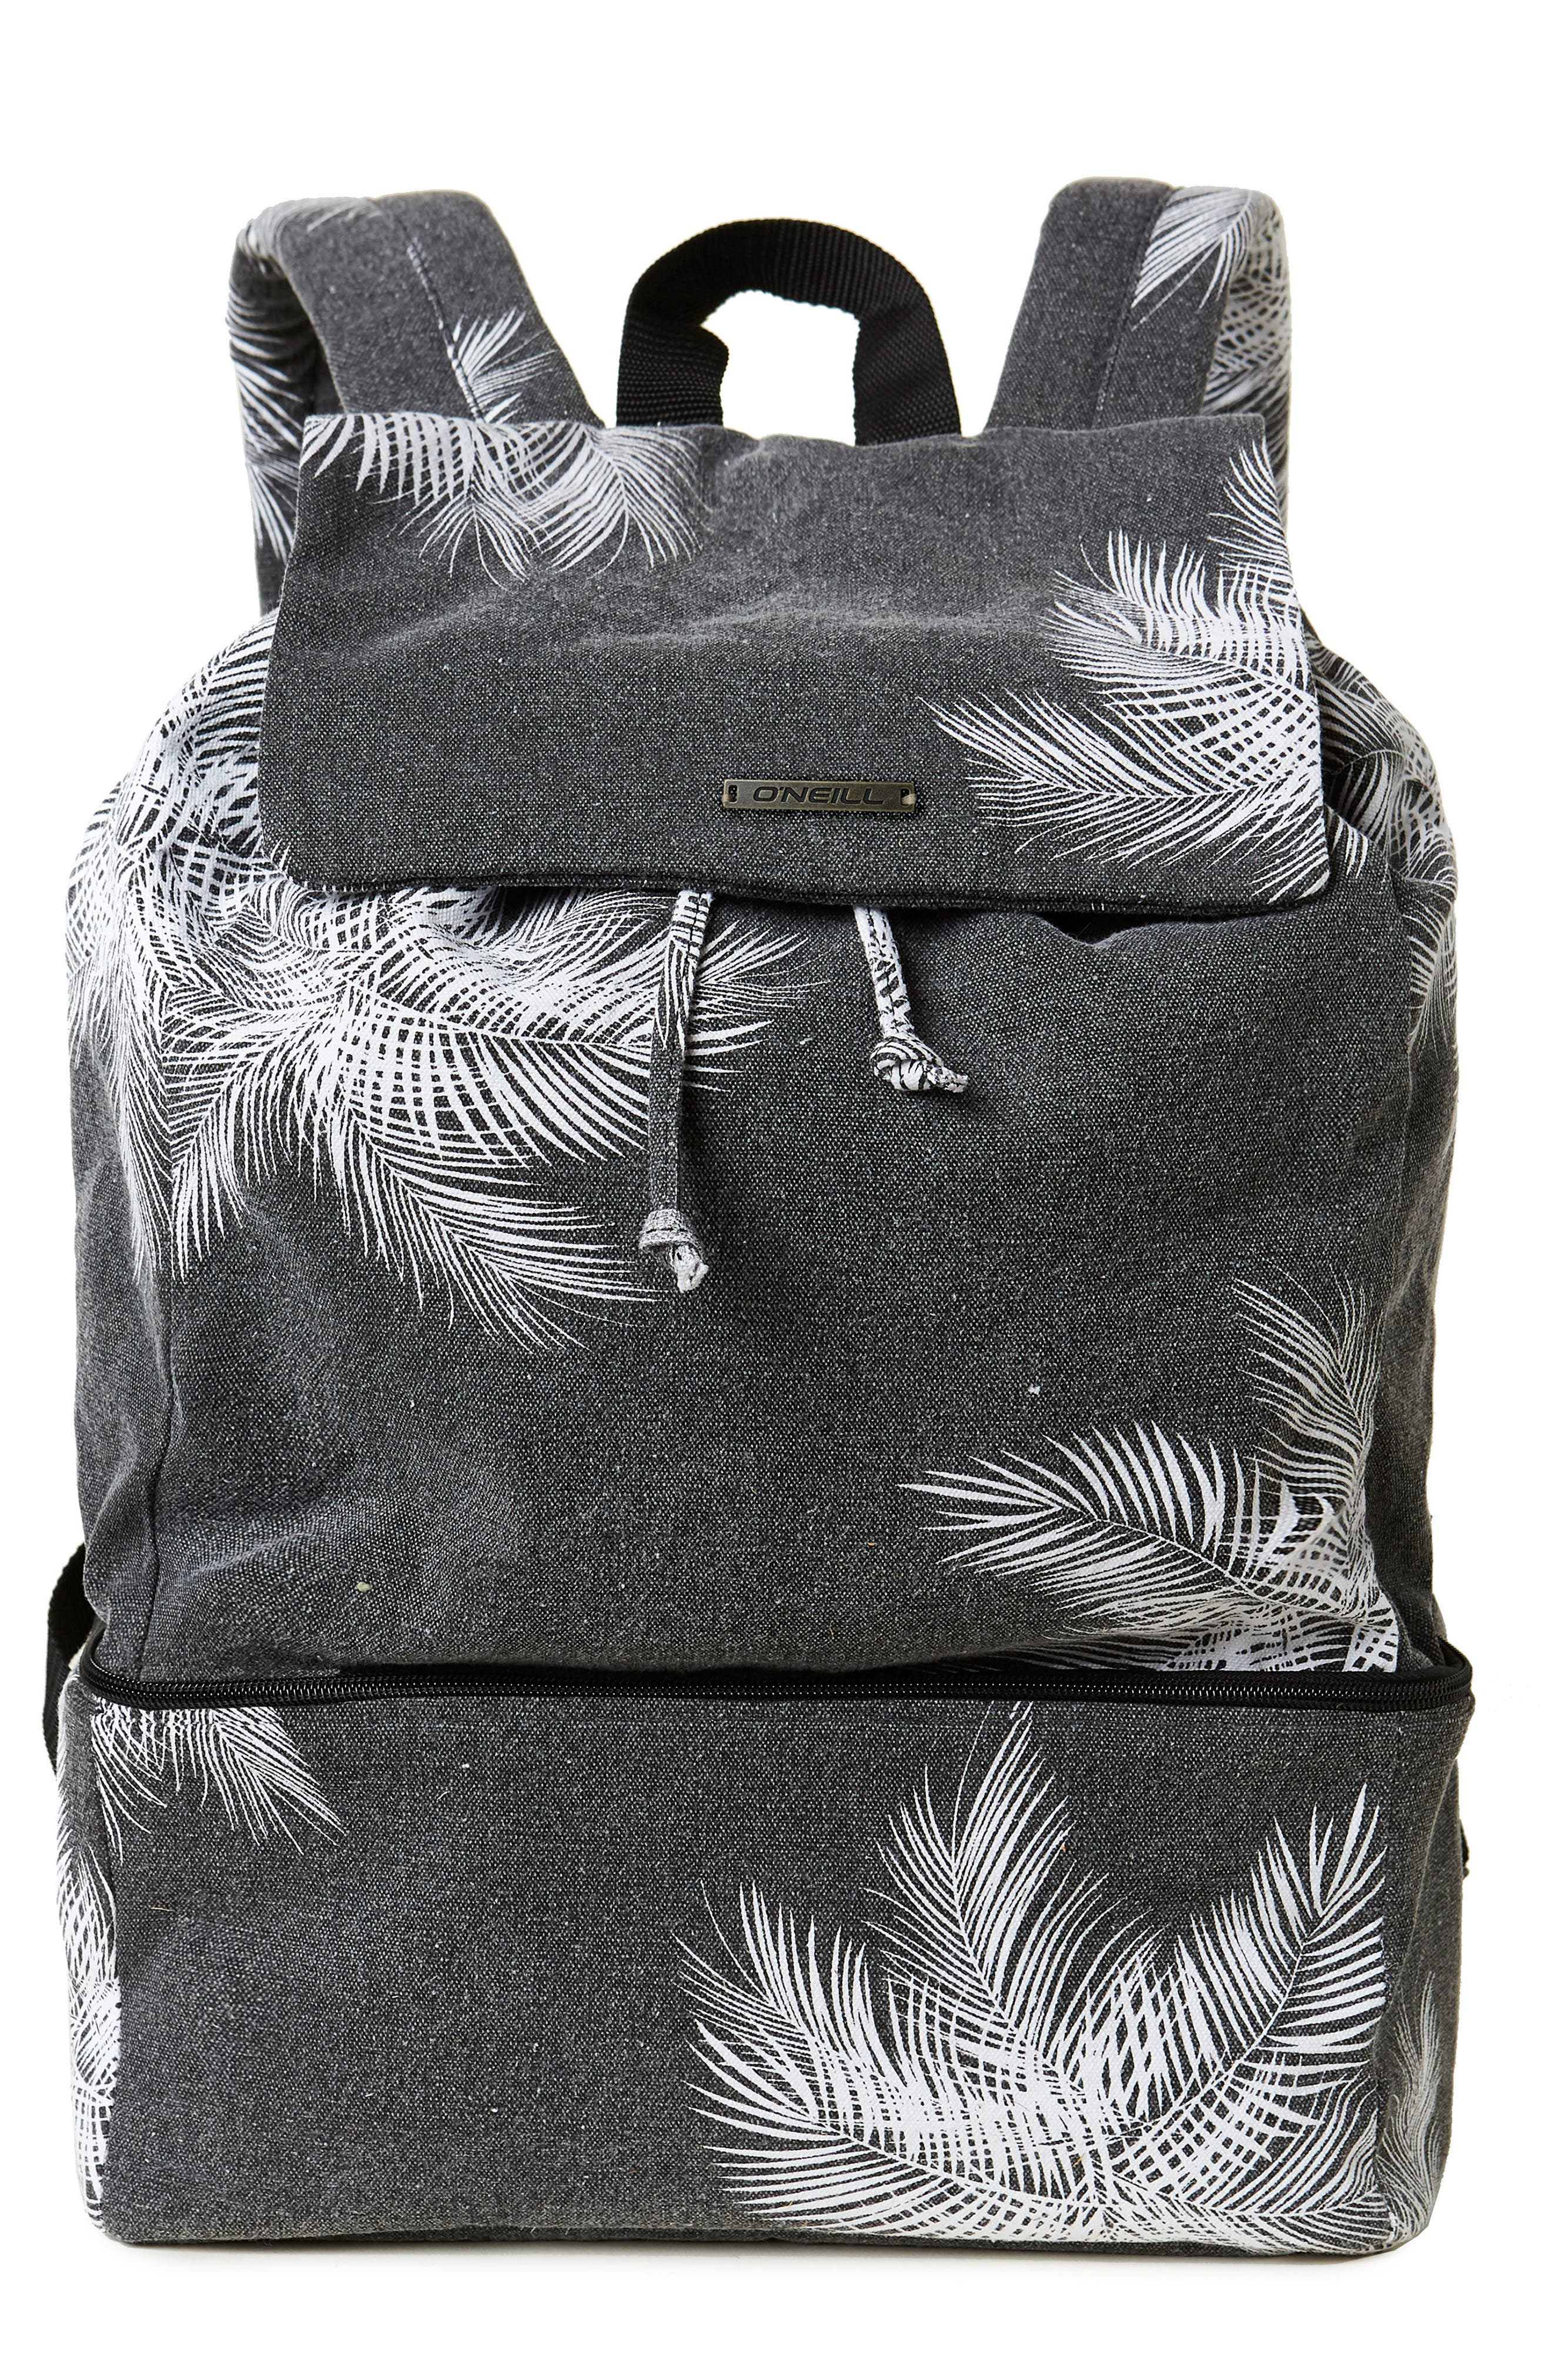 Alternate Image 1 Selected - O'Neill Chillin Print Canvas Backpack